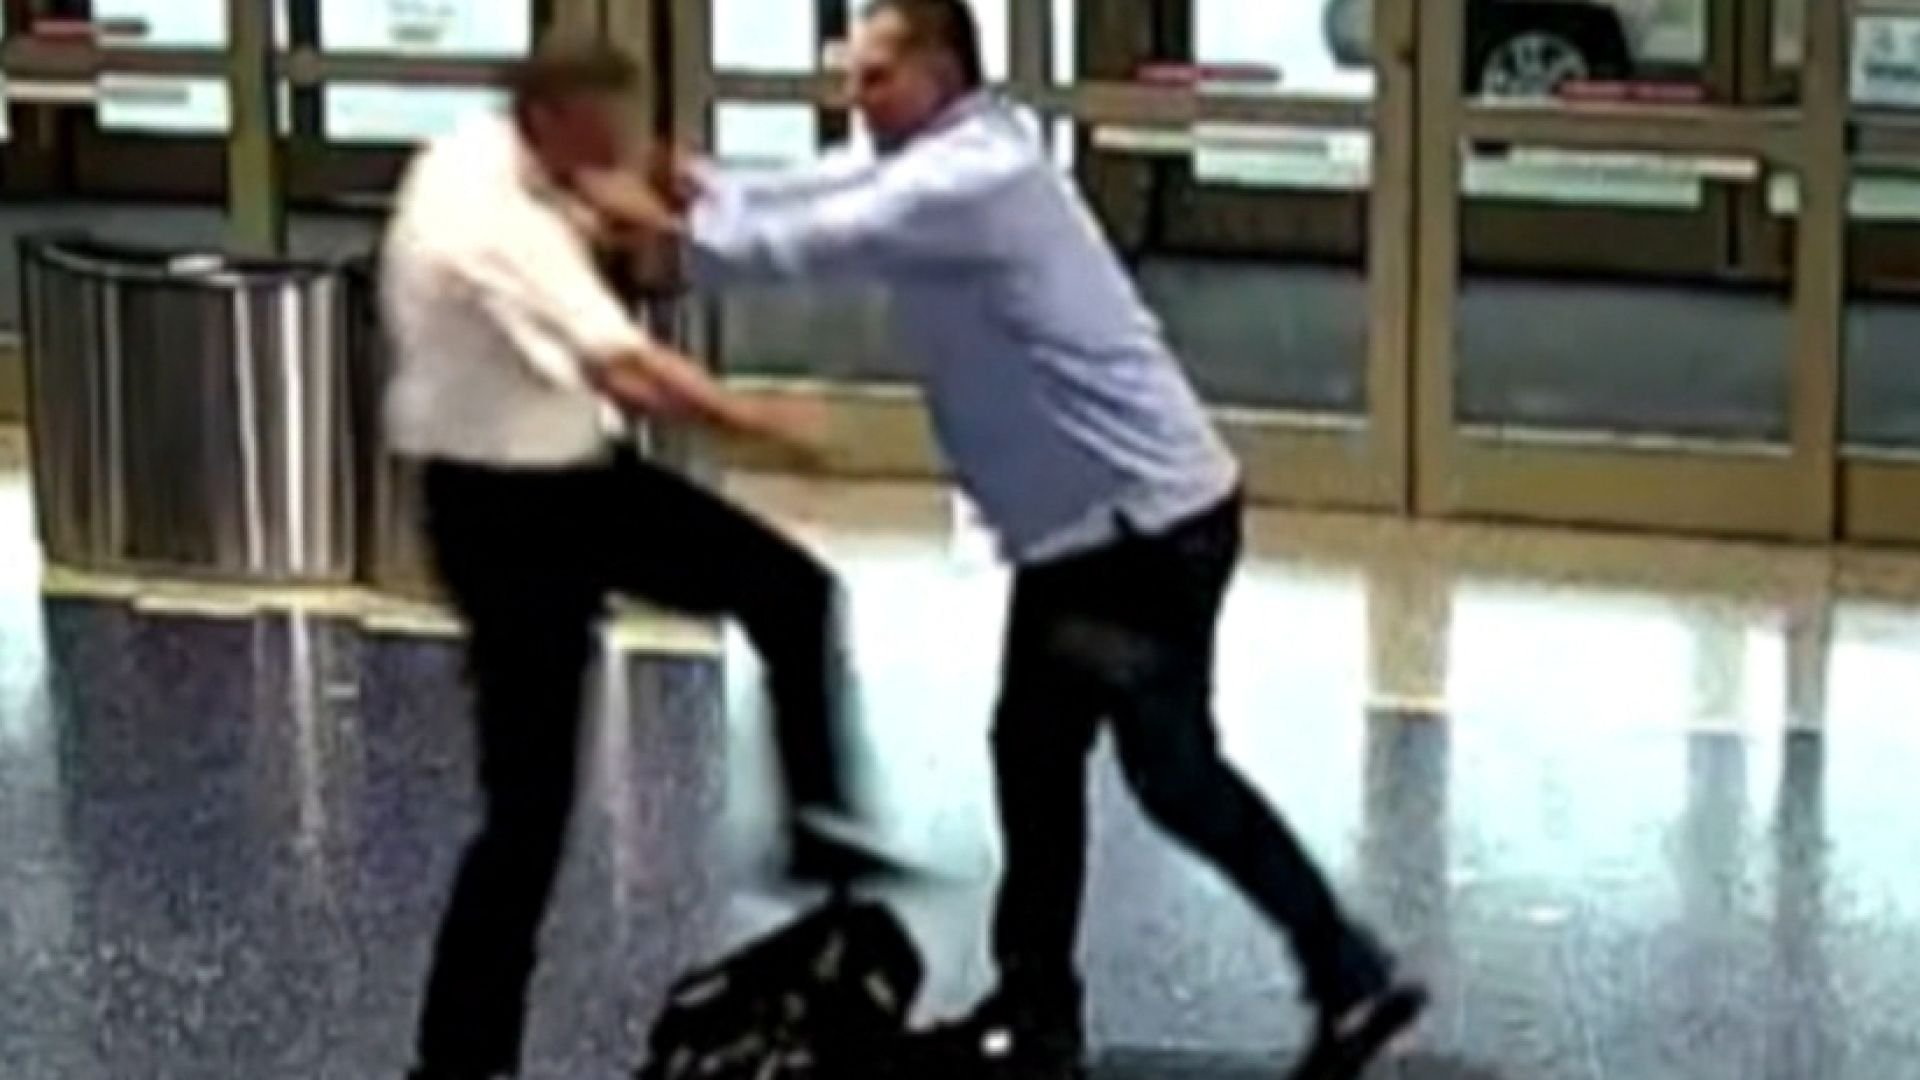 A passenger attacks an airline pilot at Kansas City International Airport.